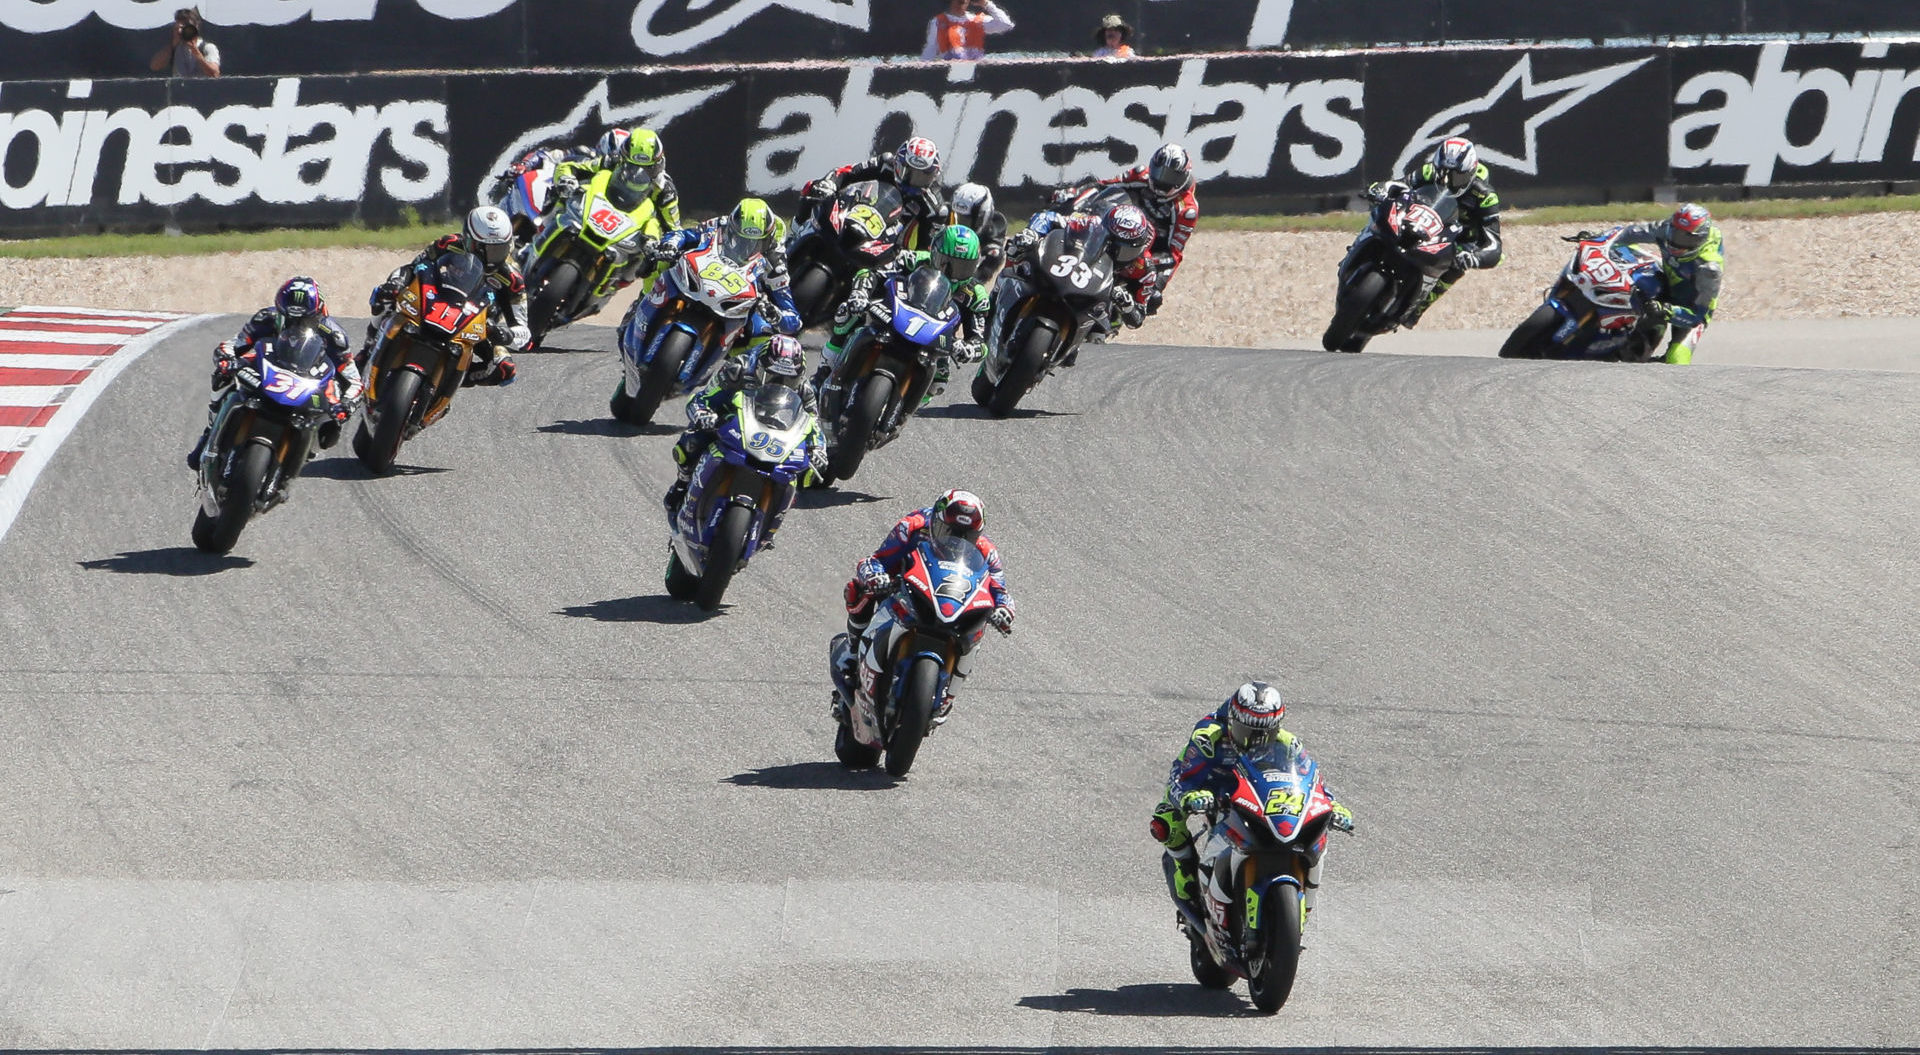 The start of a MotoAmerica Superbike race at COTA in 2019 with Toni Elias (24) leading Josh Herrin (2), JD Beach (95), Garrett Gerloff (31), Mathew Scholtz (11), Cameron Petersen (45), Jake Lewis (85), Cameron Beaubier (1), David Anthony (25), Kyle Wyman (33) and the rest of the field out of Turn One. Photo by Brian J. Nelson.